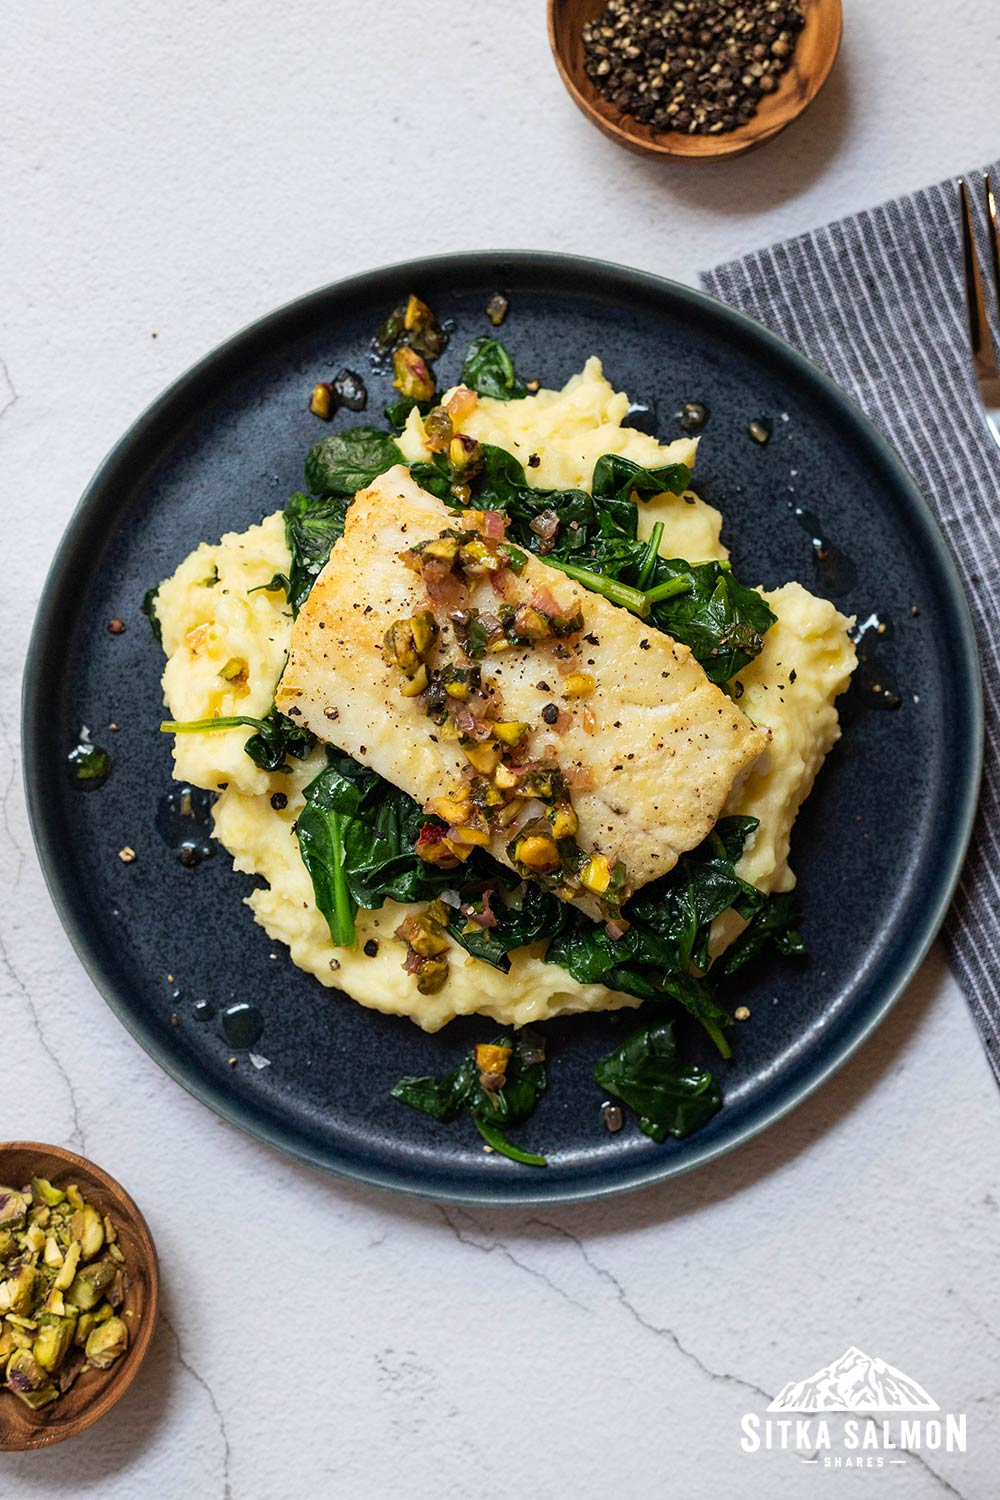 Pan-Seared Lingcod with Pistachios and Brown Butter Recipe | Sitka Salmon Shares